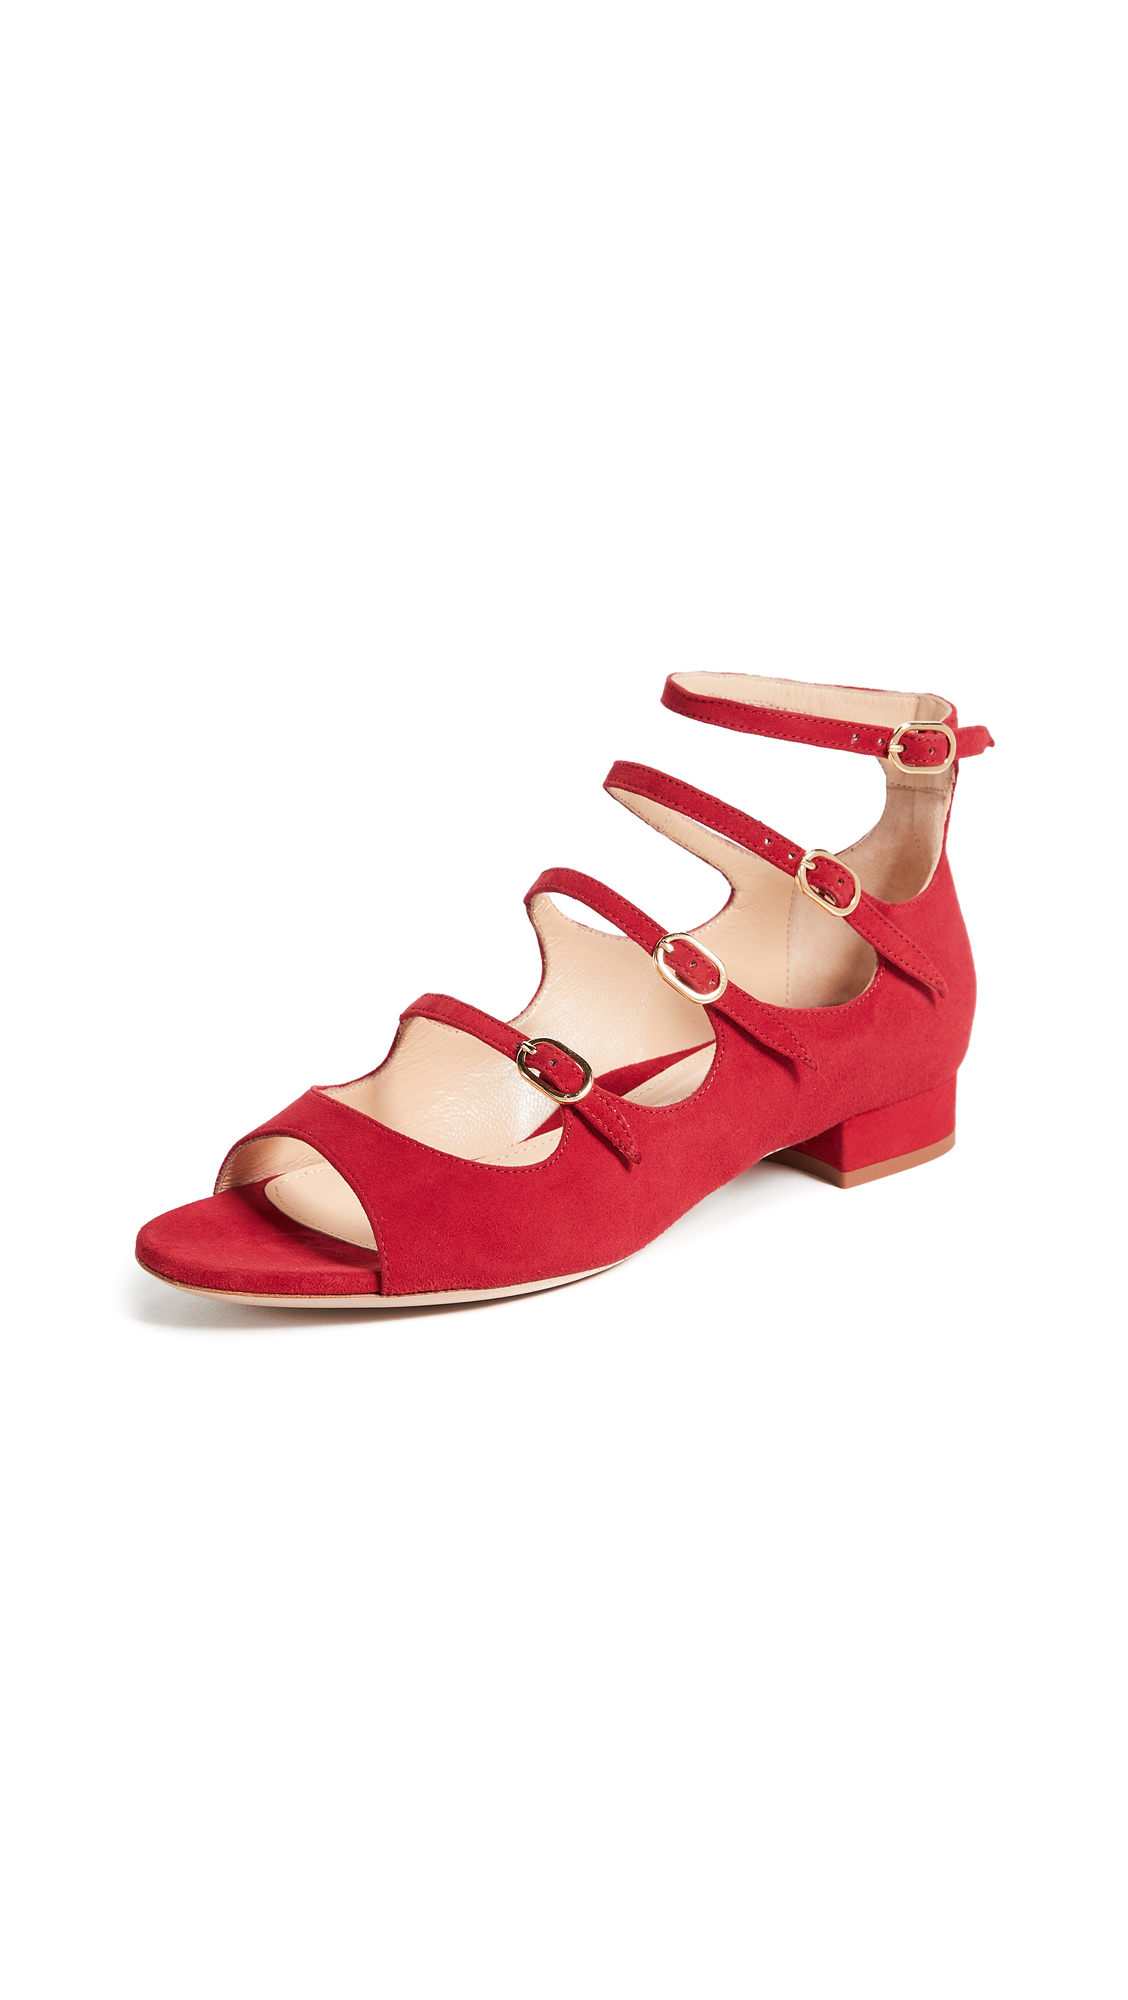 Marion Parke Jonie Pumps - Classic Red